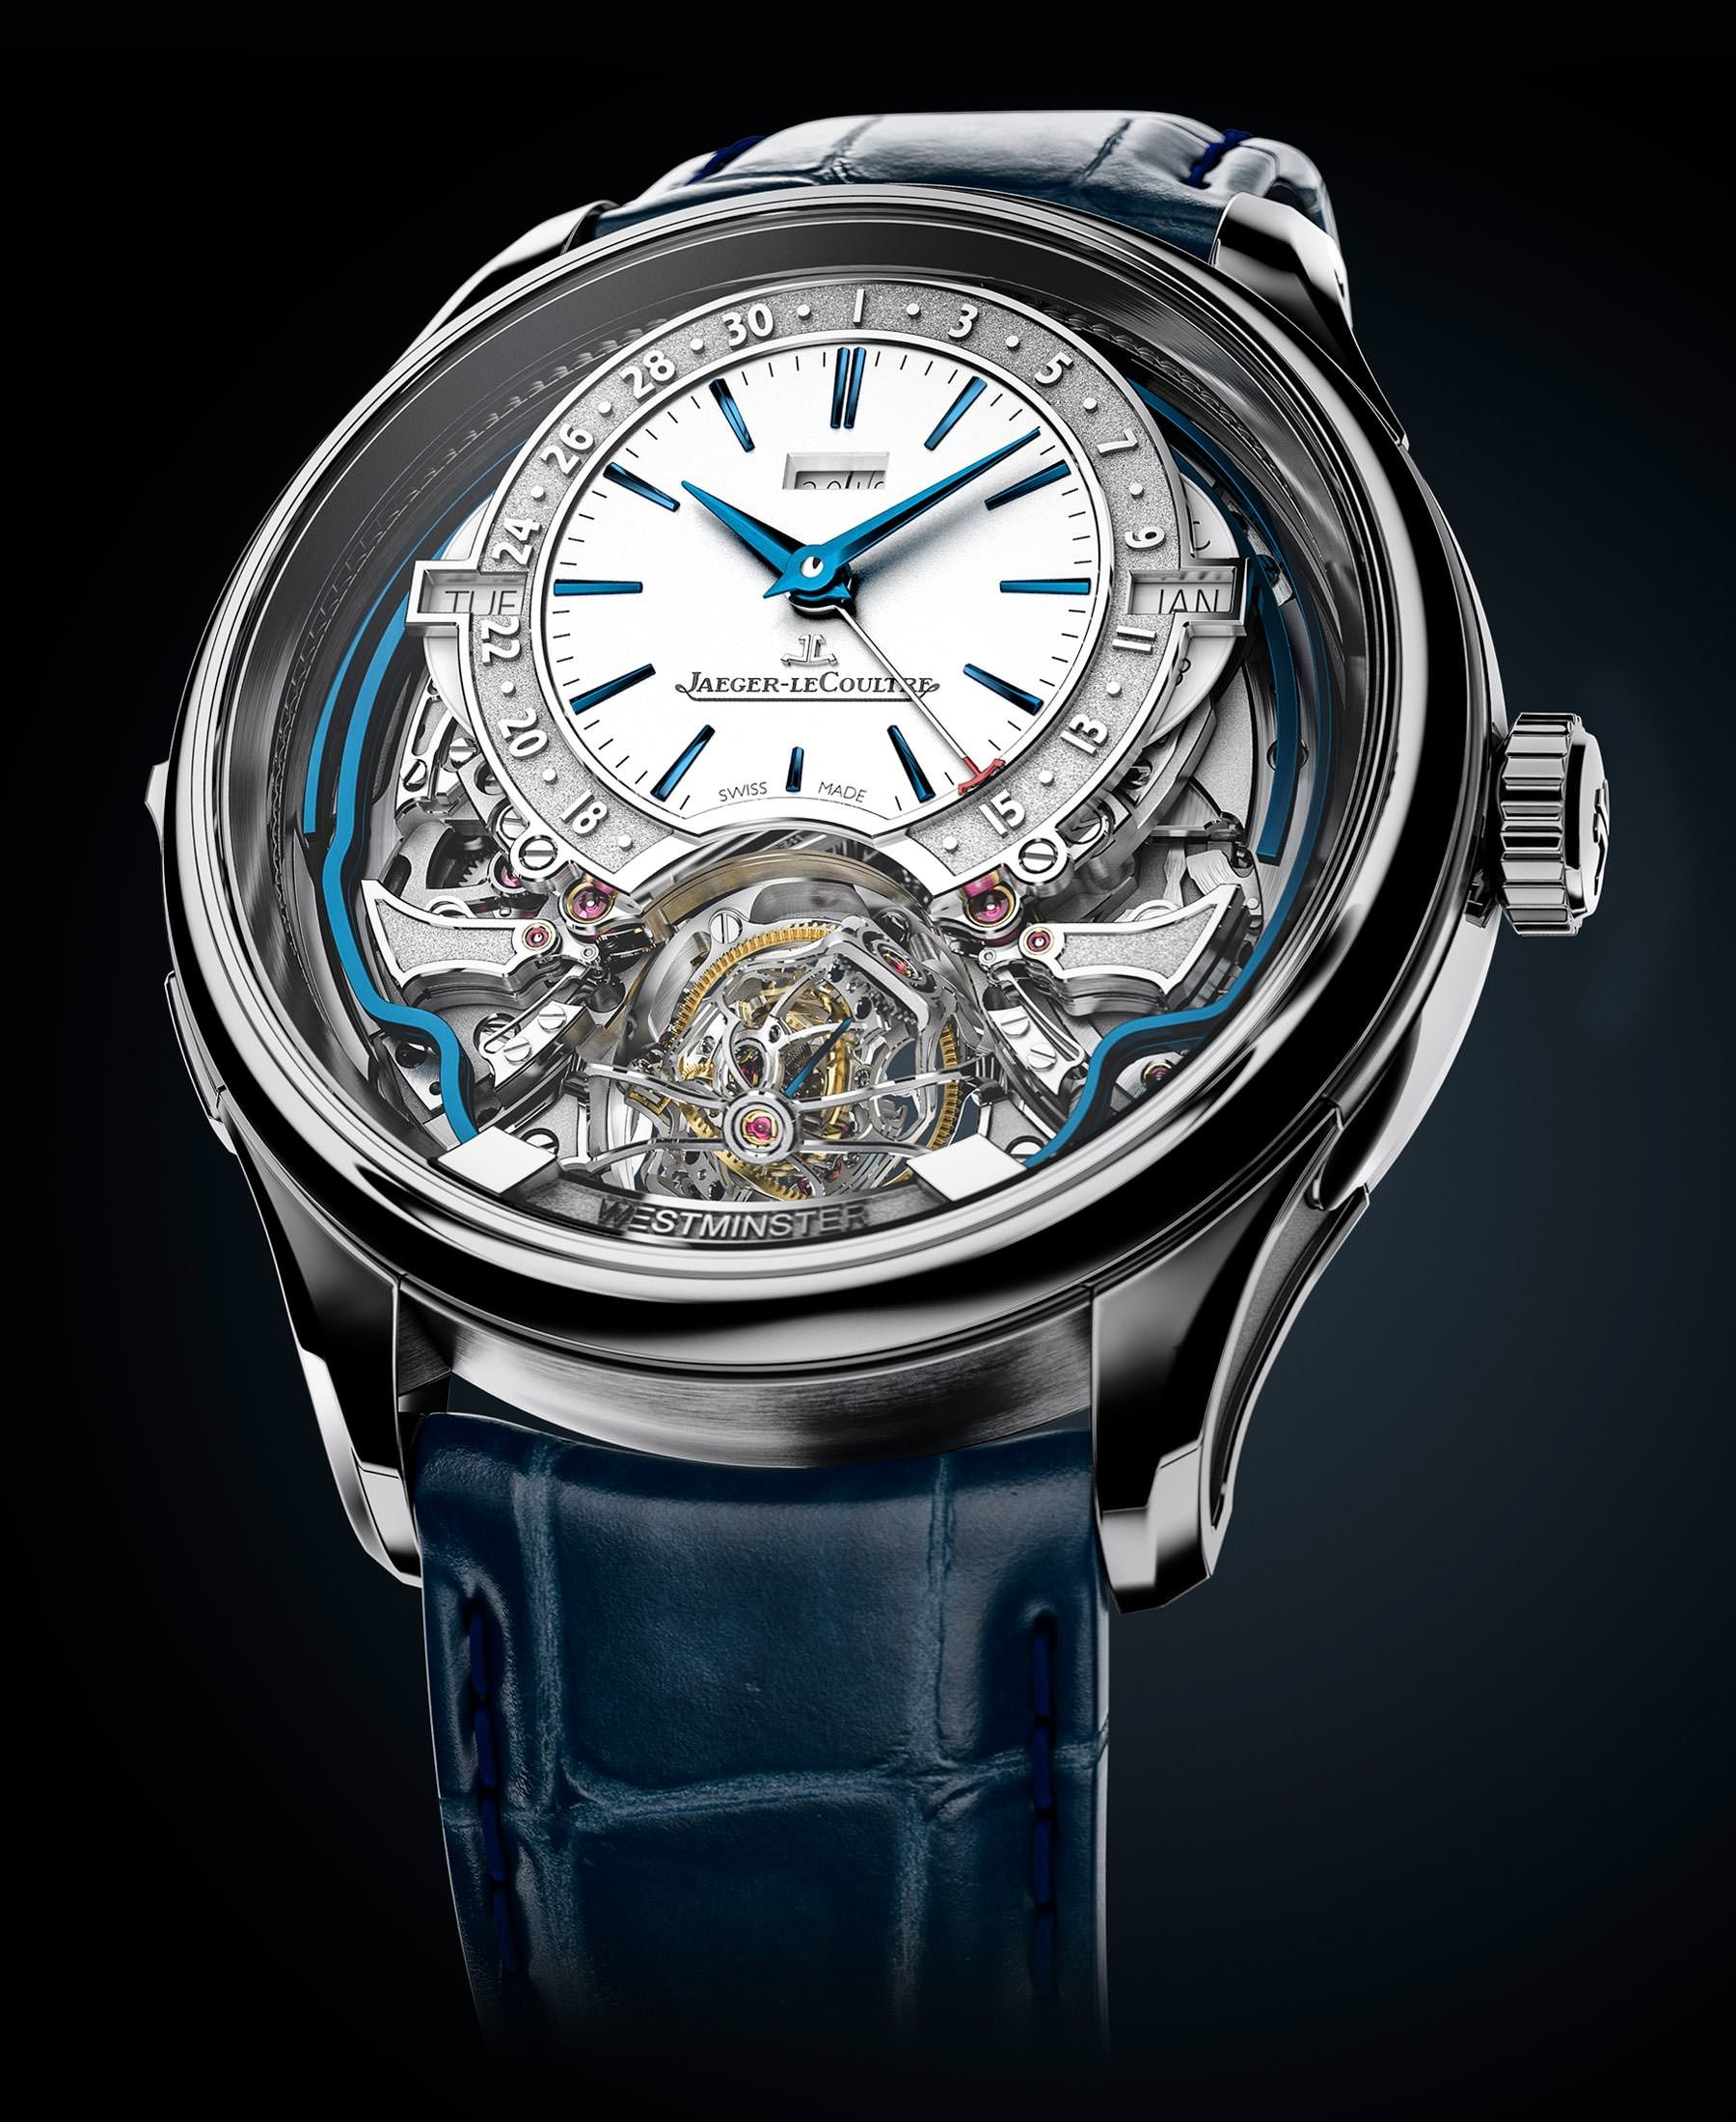 Jaeger-LeCoultre Unveils Exceptionally Complicated Novelties